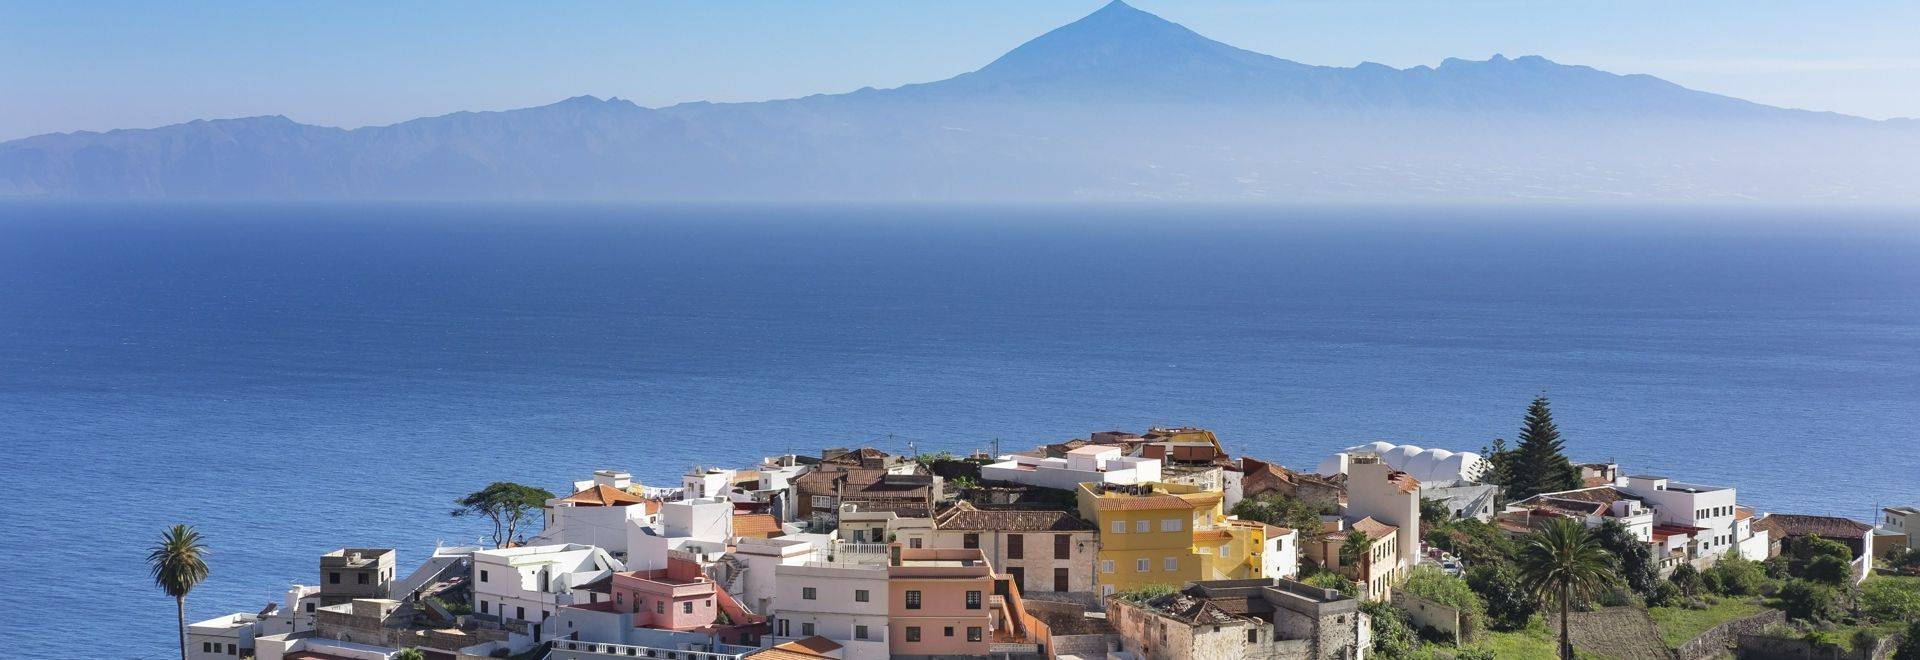 Spain, Canary Islands, La Gomera, Agulo, Teneriffa Island with Pico del Teide in the background